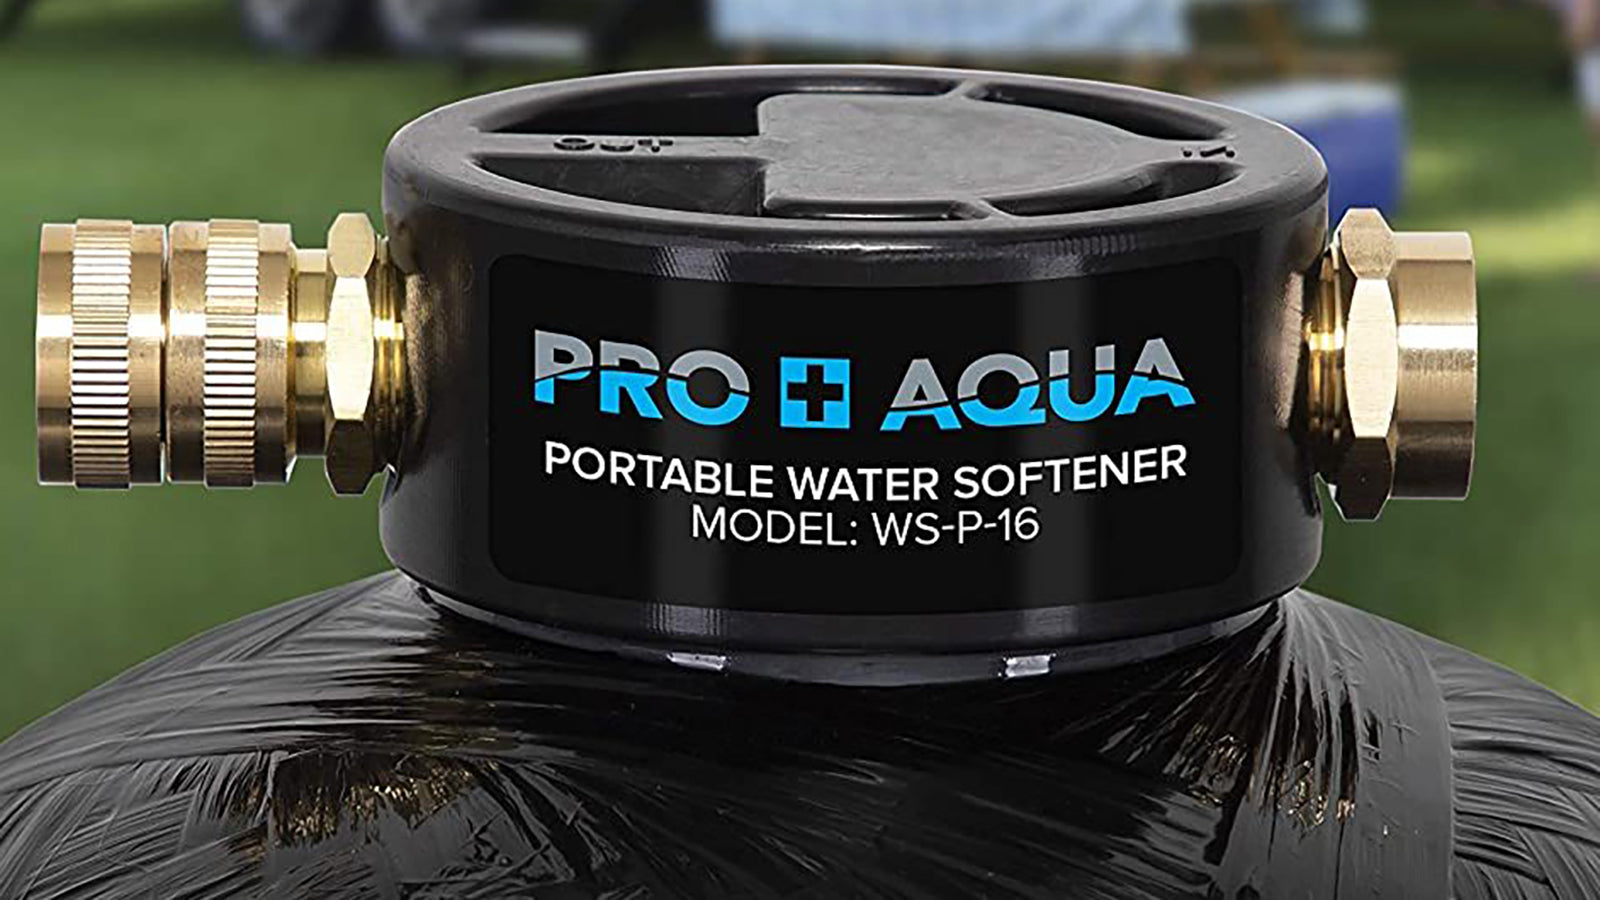 What's Inside The Premium Pro Portable Water Softener Travel Series?